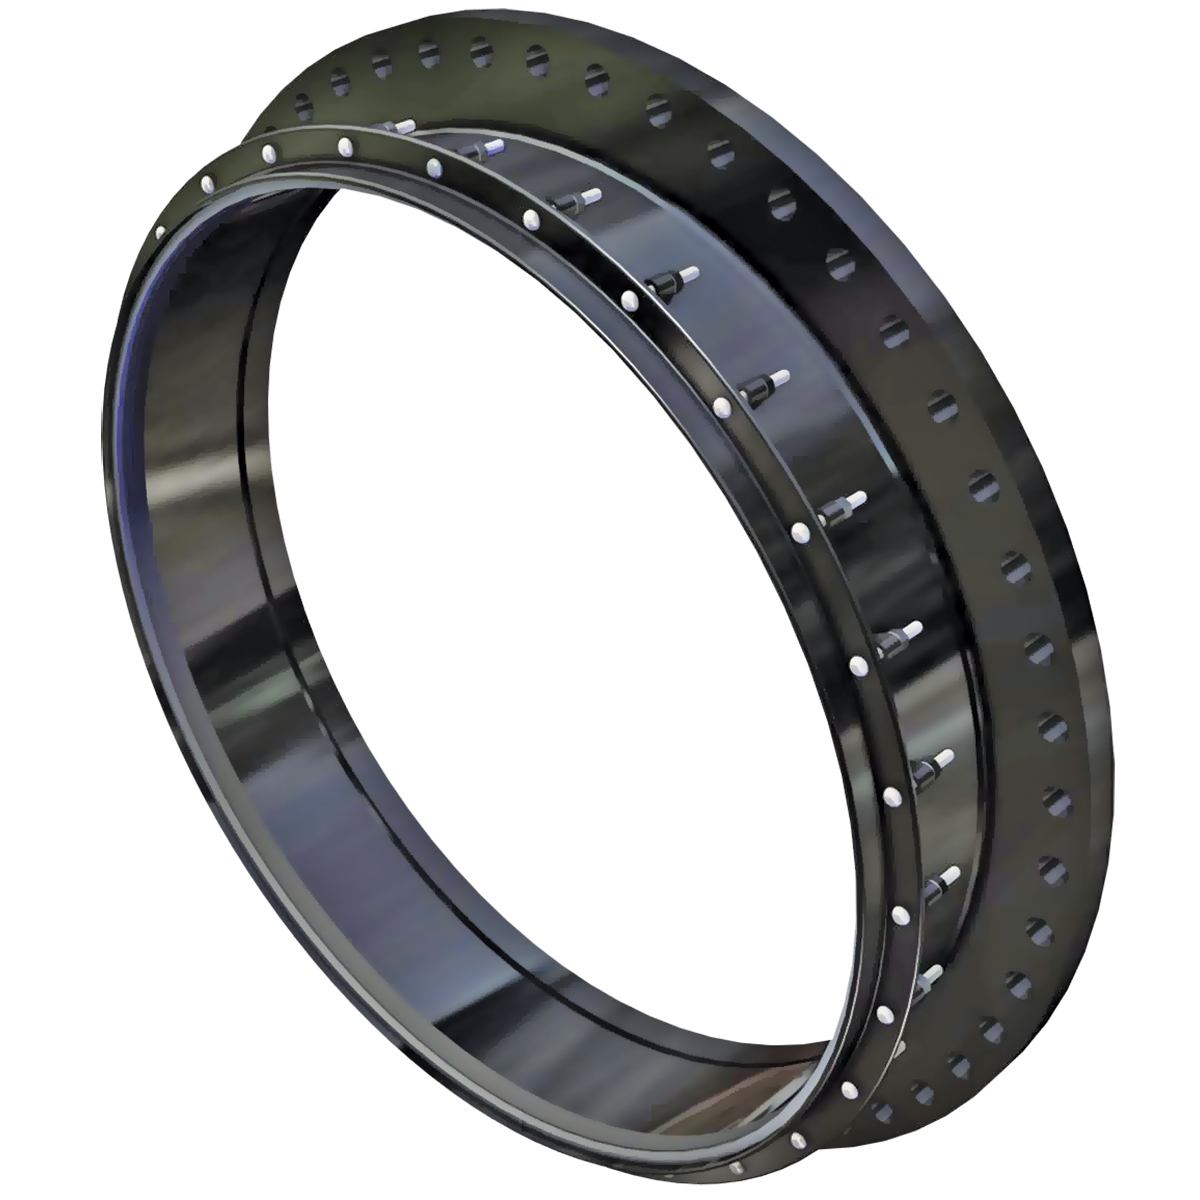 FC400 - Fabricated steel flange coupling adapter. Used to join plain-end pipe to flanges.Nominal Sizes12 - 96 inchesWorking PressureSee product submittalPipe CompatibilitySteel, cast iron, asbestos cement, plastic and other types of pipe